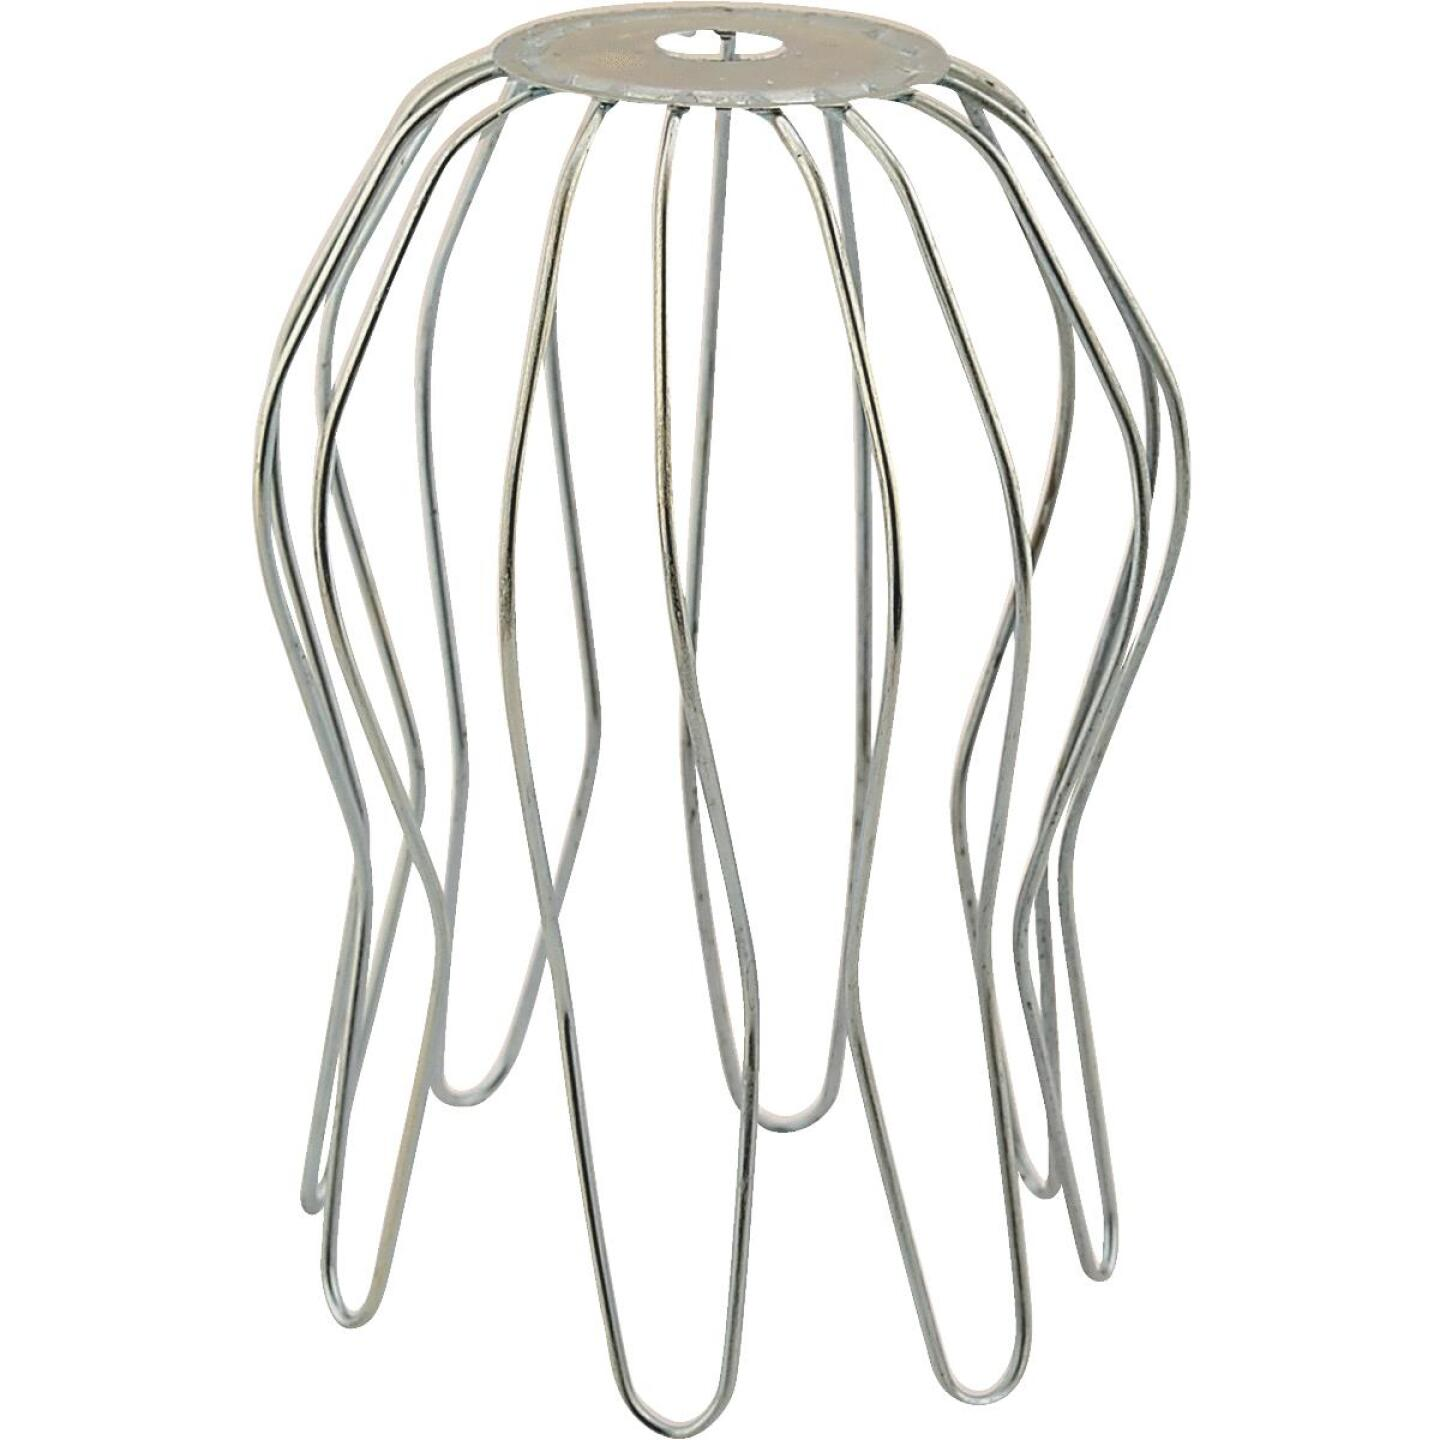 Norwesco 2 - 3 In. Galvanized Downspout Strainer Image 1